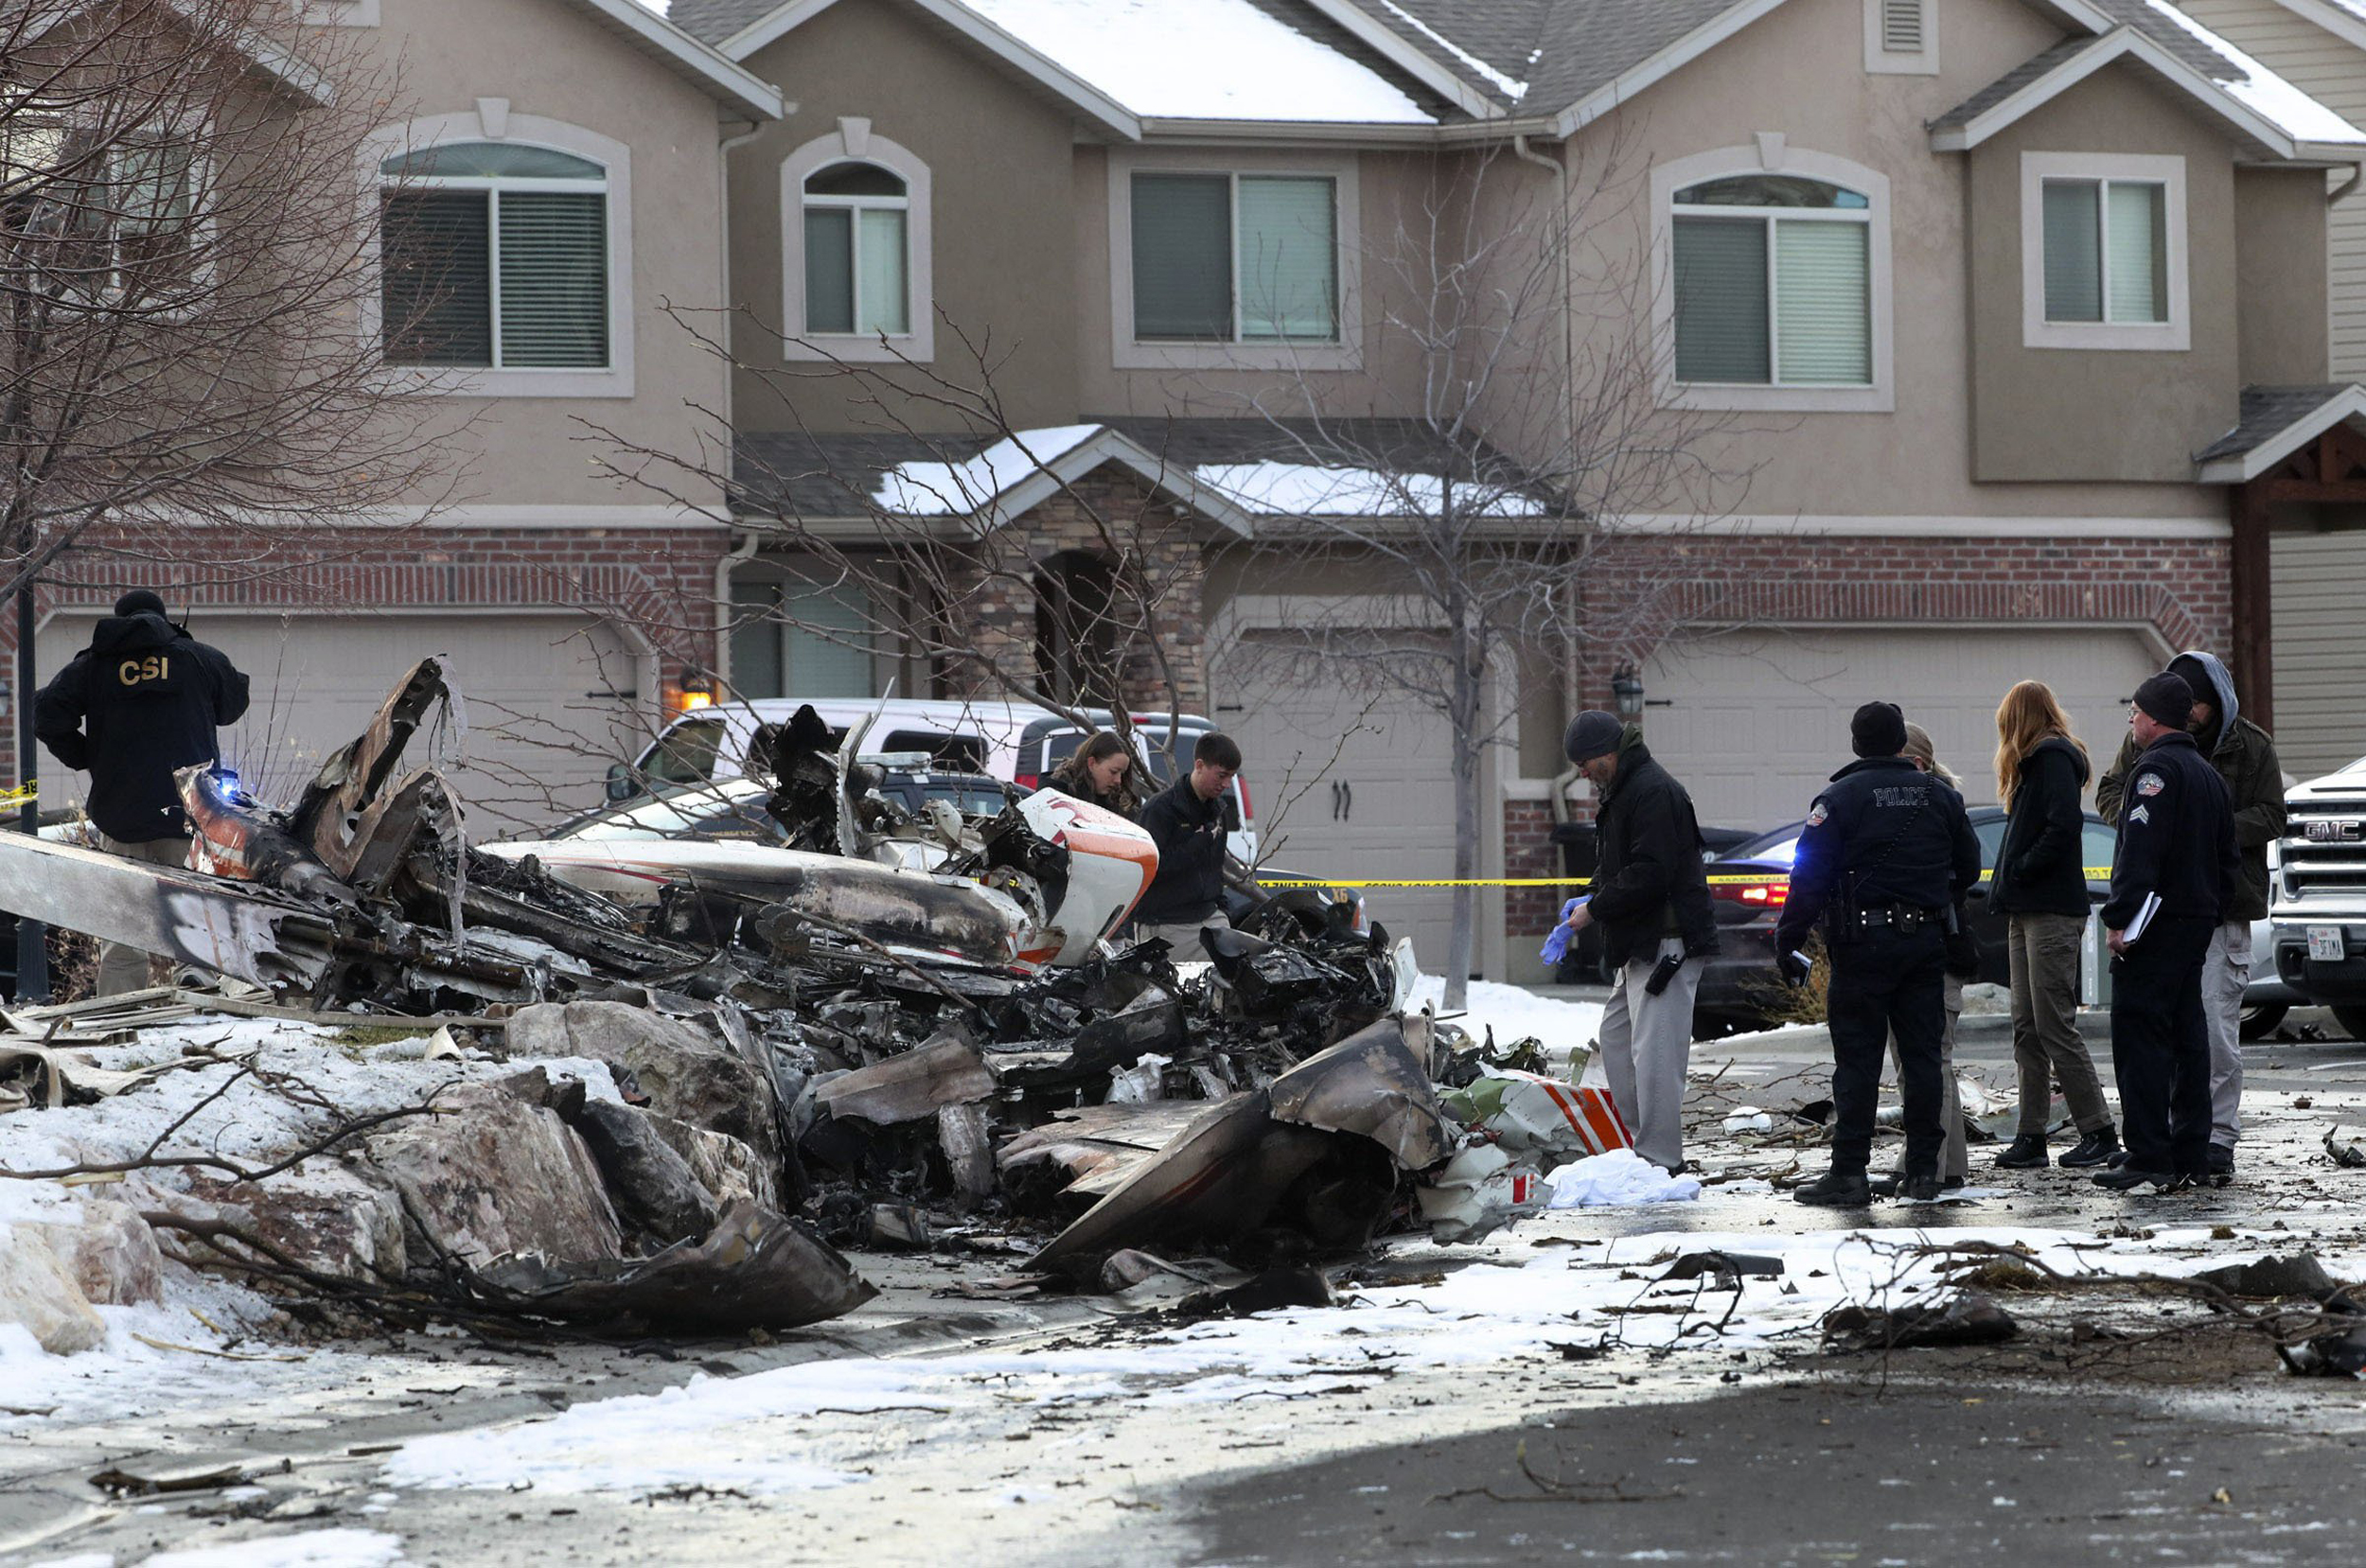 Image: Utah plane crash